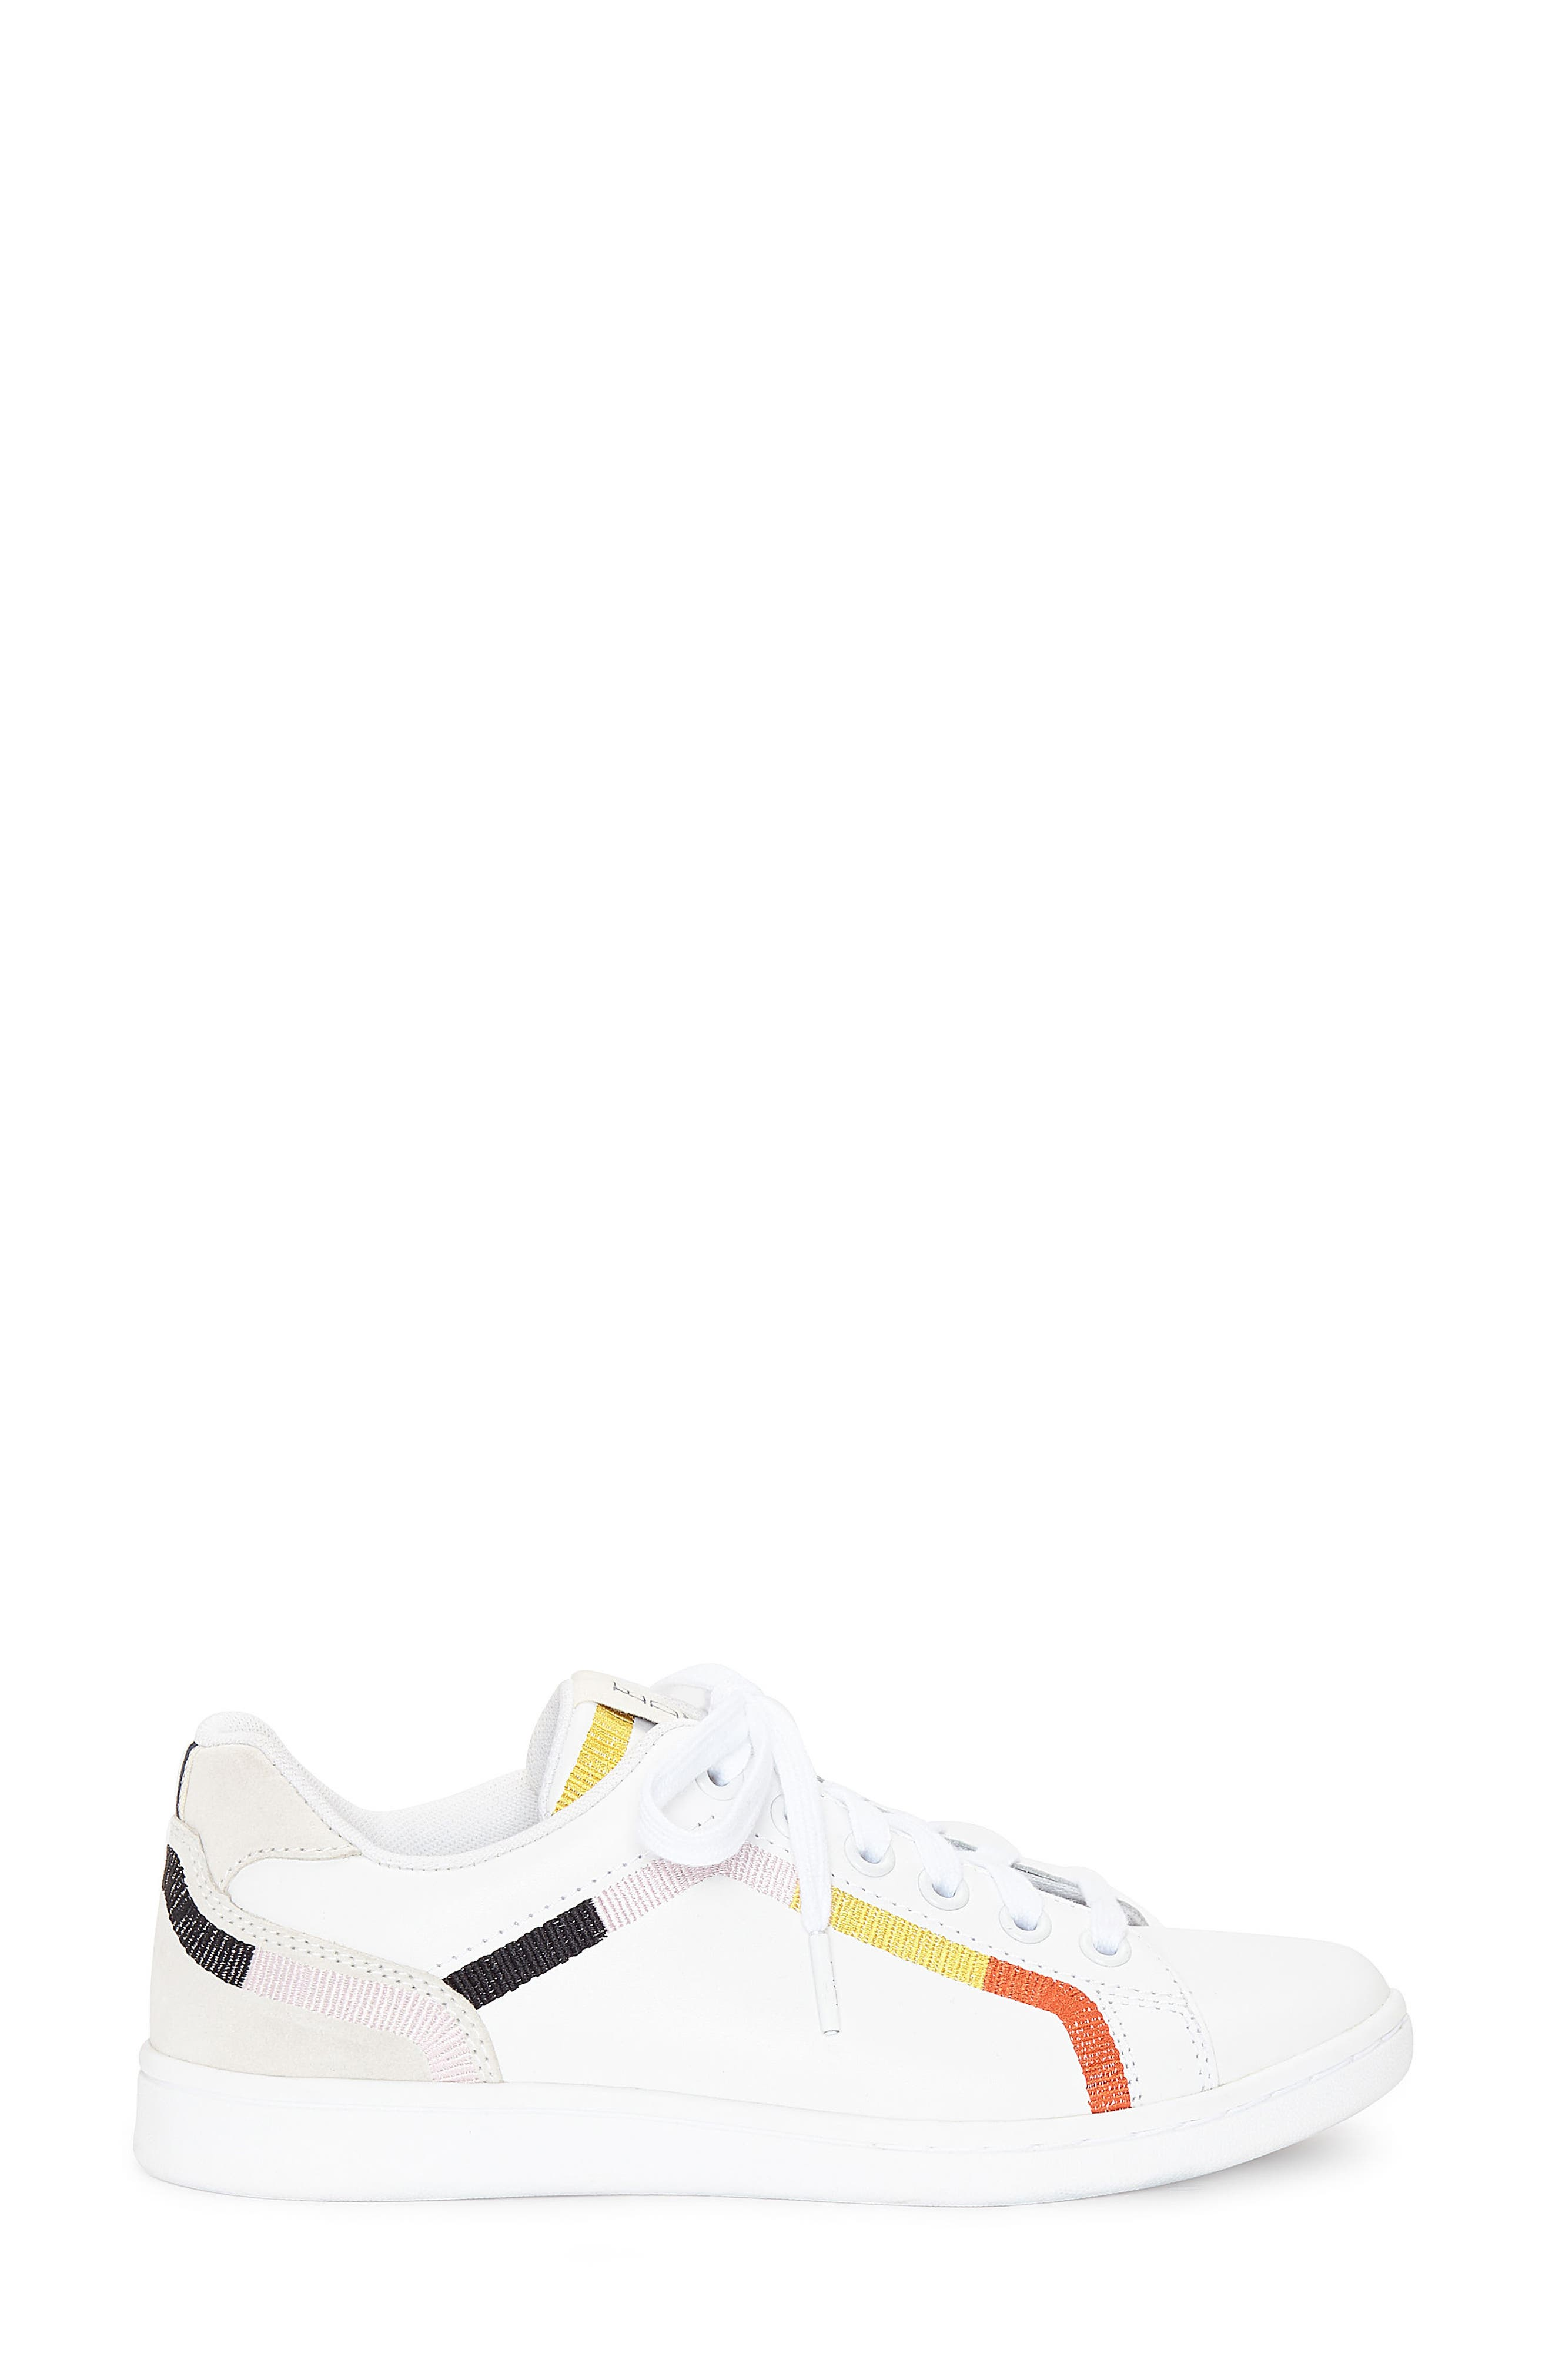 Costella Sneaker,                             Alternate thumbnail 3, color,                             PURE WHITE LEATHER